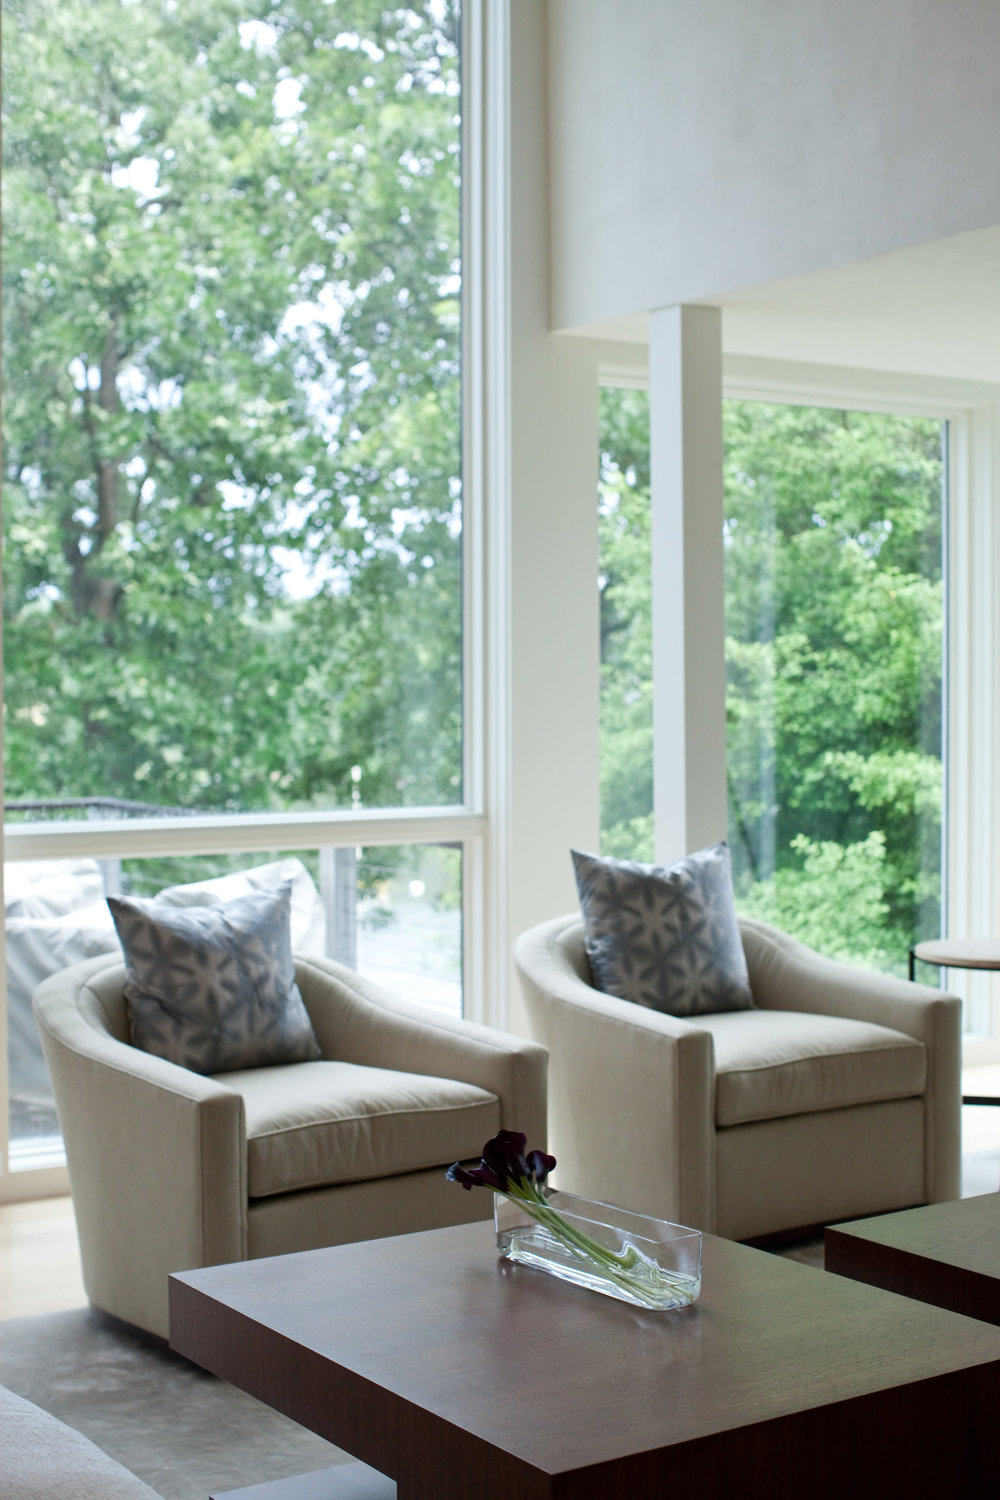 Michelle Miller Interiors-Annapolis Residence II-0245 - LR Pr of Chairs.jpg